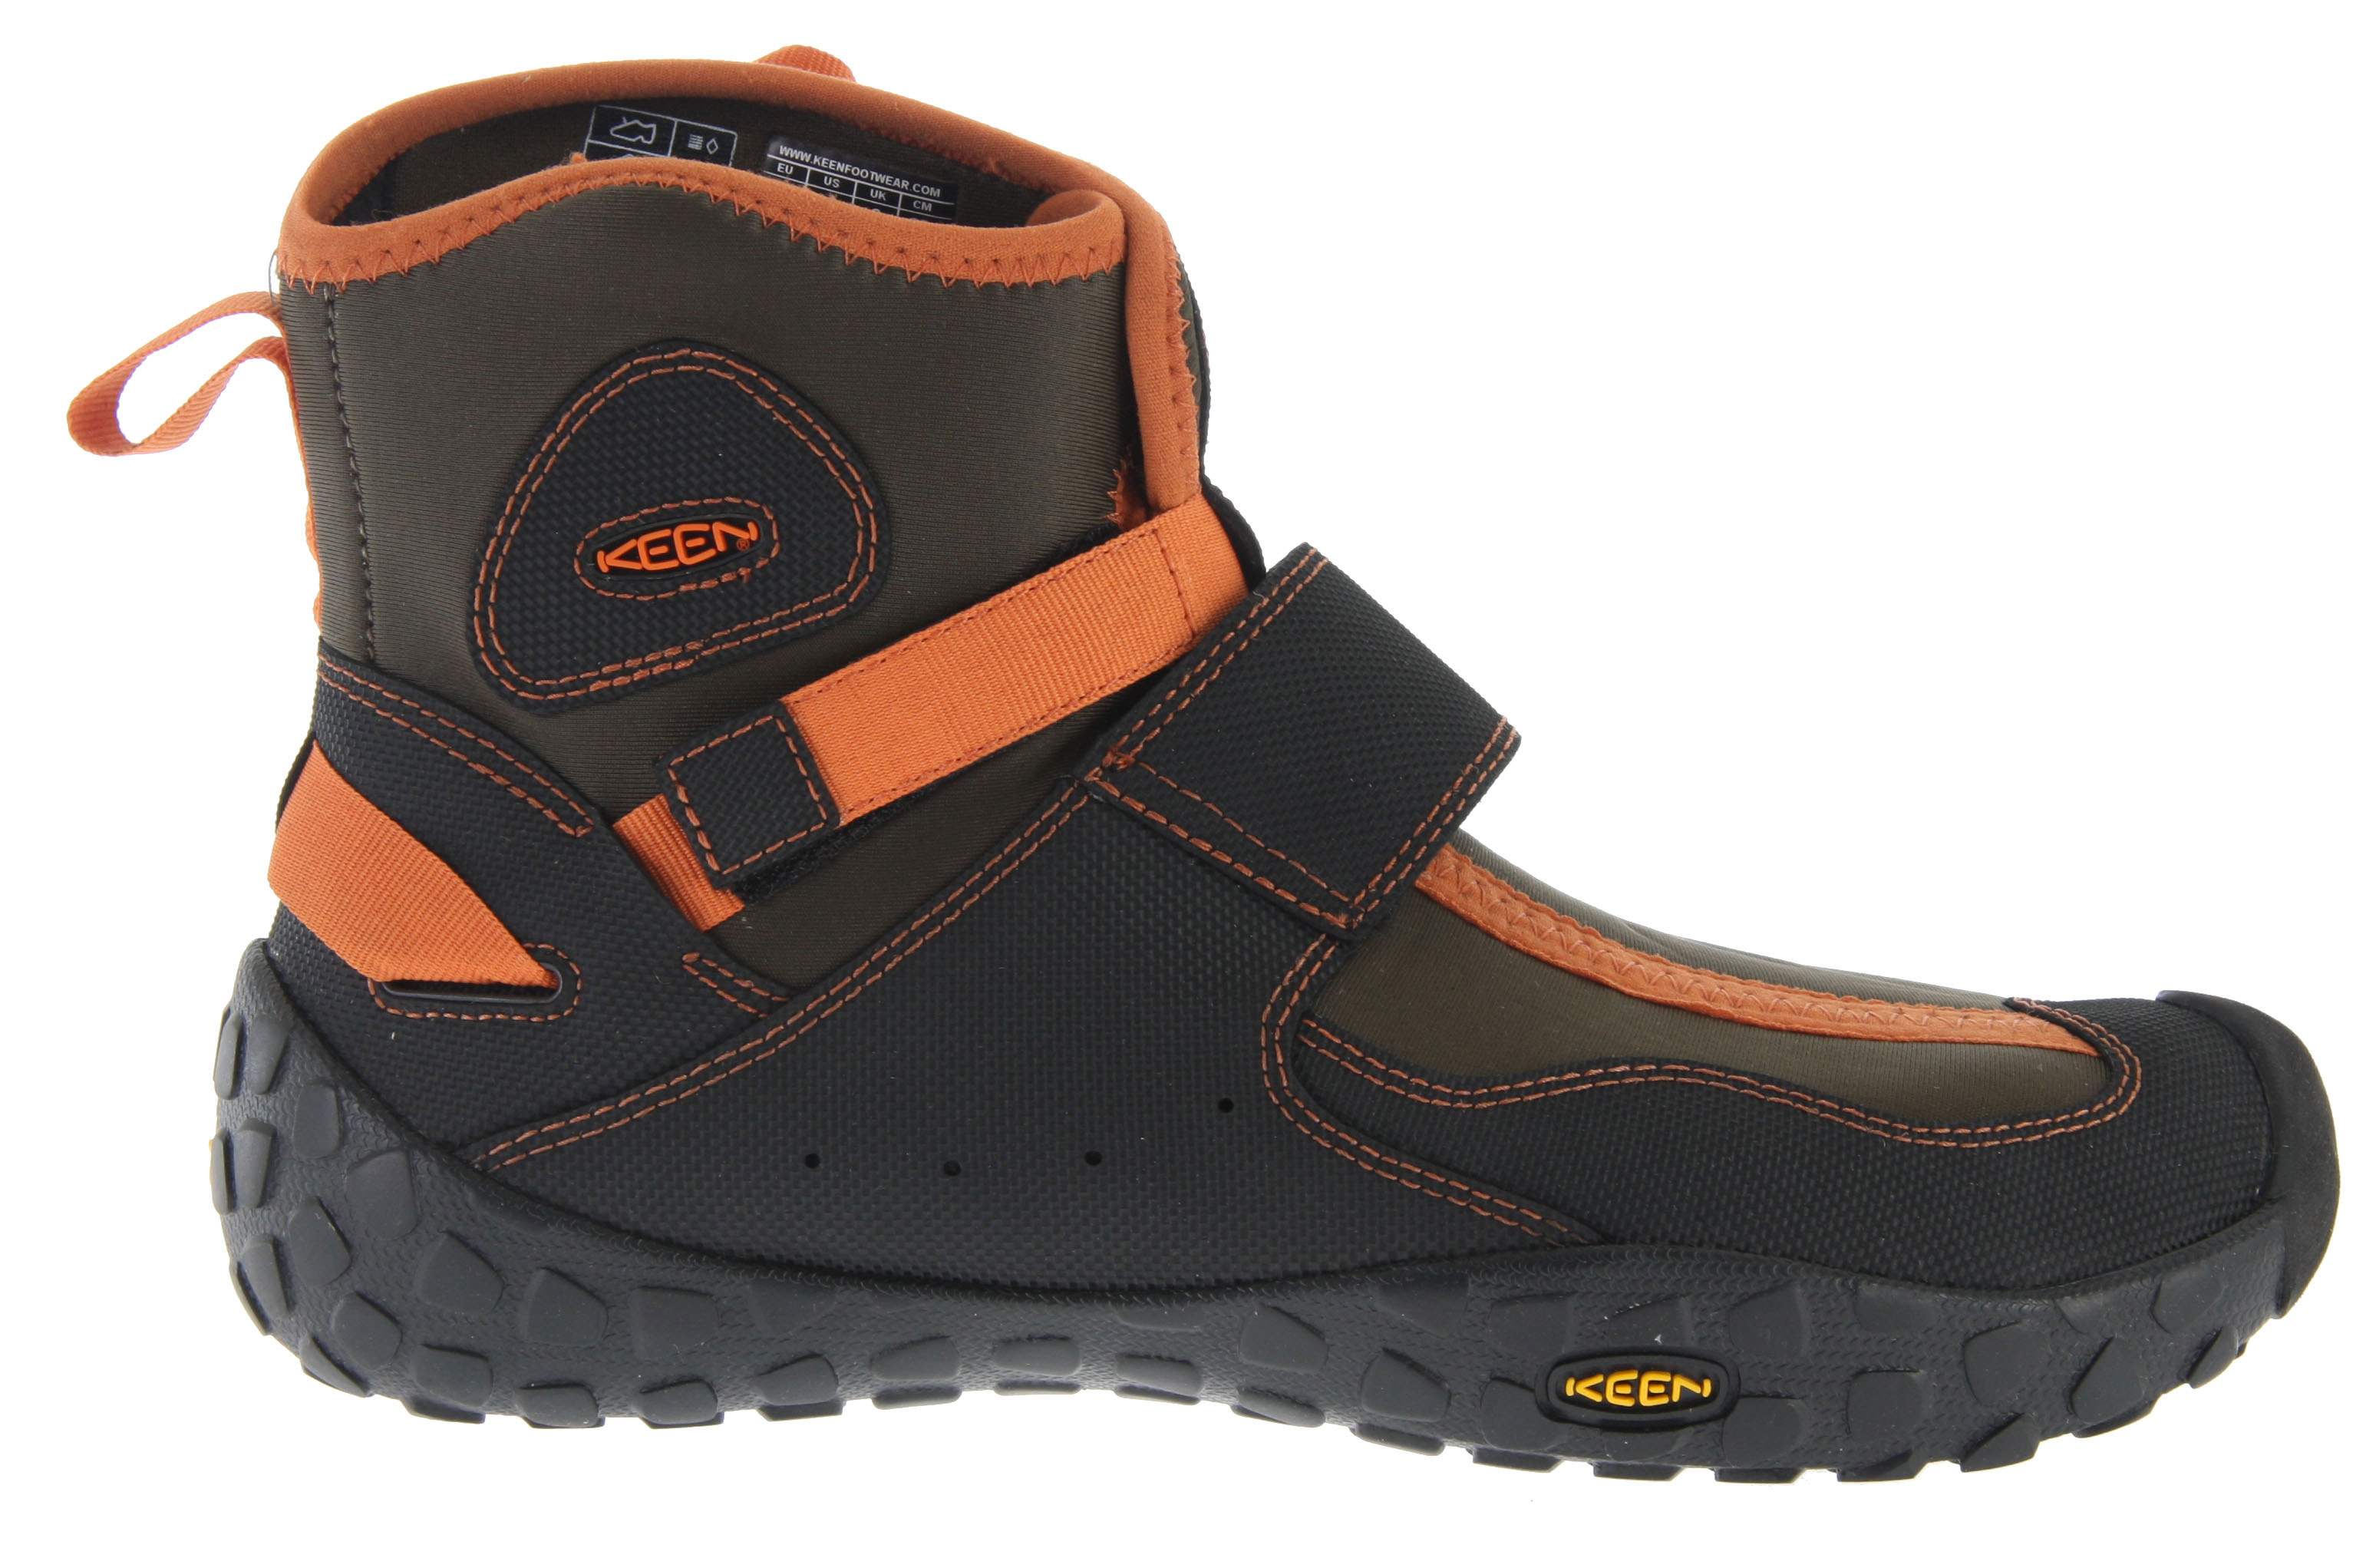 Kayak and Canoe KEEN designed this water bootie for our paddler friends, but that doesn't mean it's only for them. The Keen Gorge Boot is for anyone looking to keep cold out and comfort in. The 3mm neoprene keeps feet warm in the river (or any soggy place), the two strap system is easy to adjust even with frigid fingers, and the high traction outsole grips the most slippery surfaces.Key Features of the Keen Gorge Boots Water Shoes: Weight: 14.84 oz / 420.707 grams Fit Tip: We find this style runs pretty true to size. Lining: AEGIS Microbe Shield treated lining Upper: Abrasion resistant synthetic and 3MM neoprene upper Rubber: High traction, performance water outsole Activities: Paddle, Beach Type: Boots Weather: Wet - waterproof Abrasion resistant synthetic and 3MM neoprene upper AEGIS Microbe Shield treated lining High traction, performance water outsole Multi-point adjustable strap system Removable metatomical EVA molded footbed with AEGIS Microbe Shield Wrapped outsole with multi directional lug pattern Aegis Microbe Shield: Aegis Microbe Shield controls the bacteria and fungi that cause odors, stains and product deterioration. Aegis technology is free of environmentally harmful substances. - $51.95